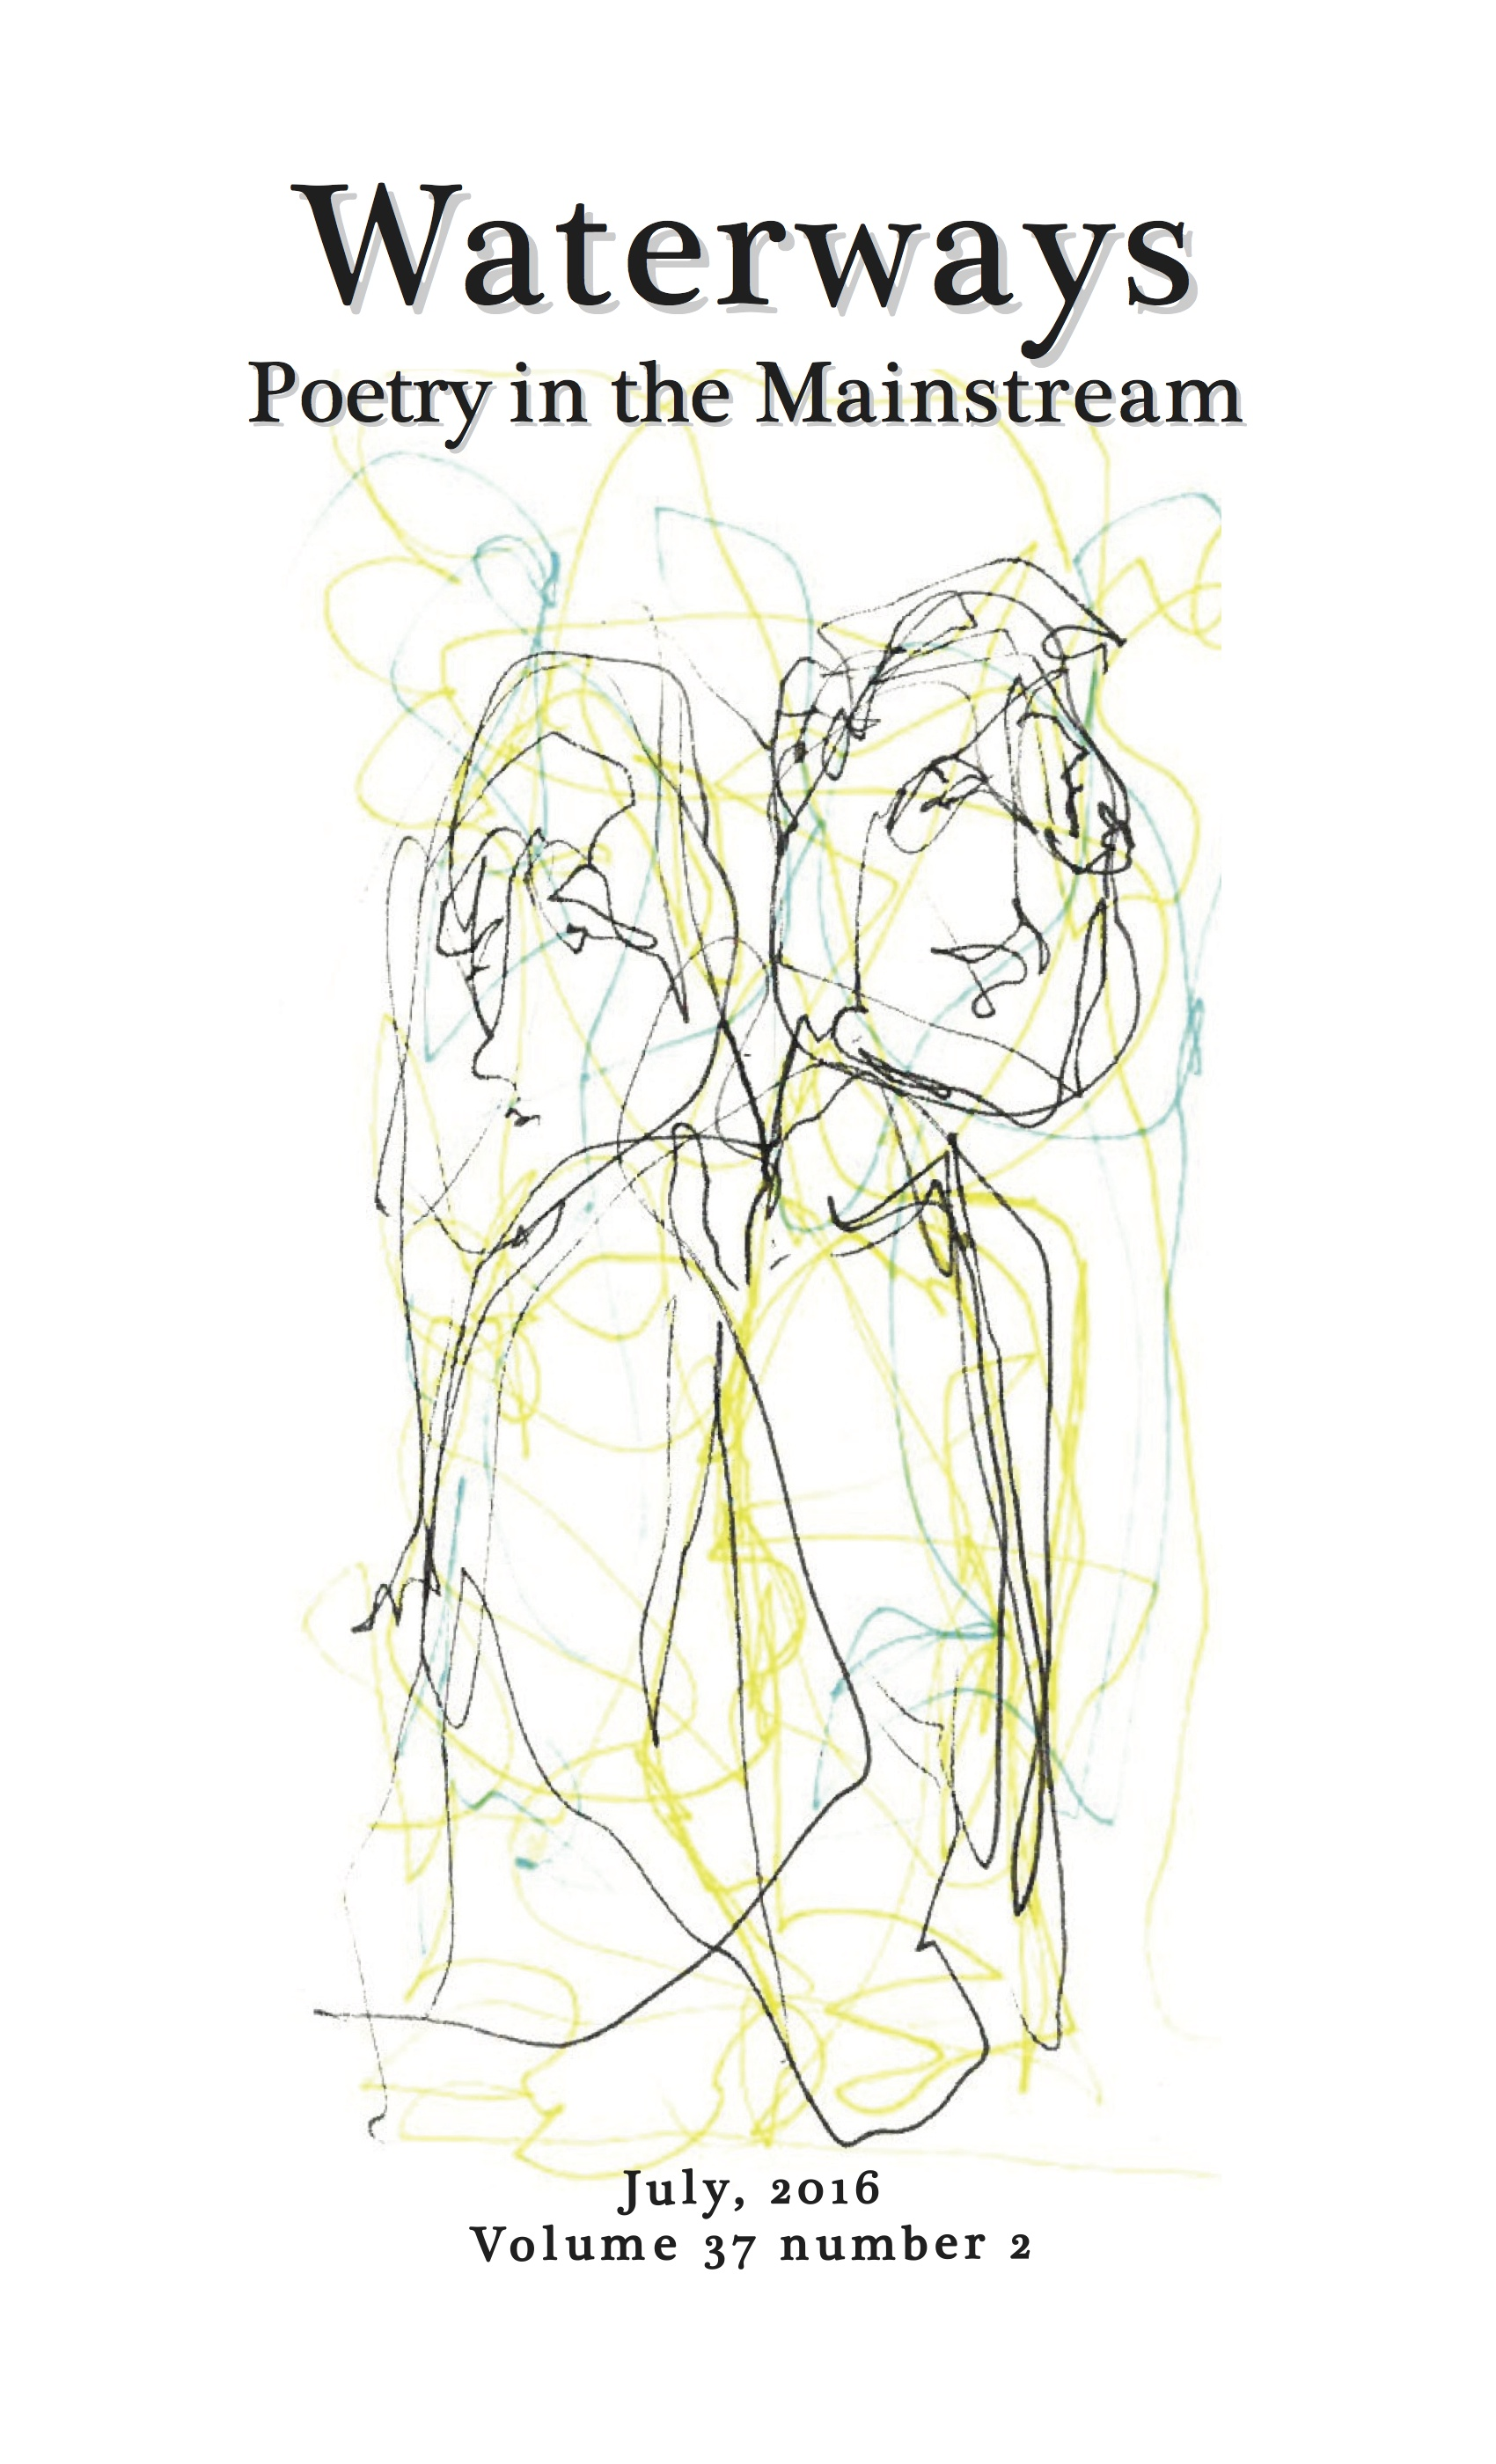 Richard Spiegel's sketch of couple for cover of Waterways: Poetry in the Mainstream